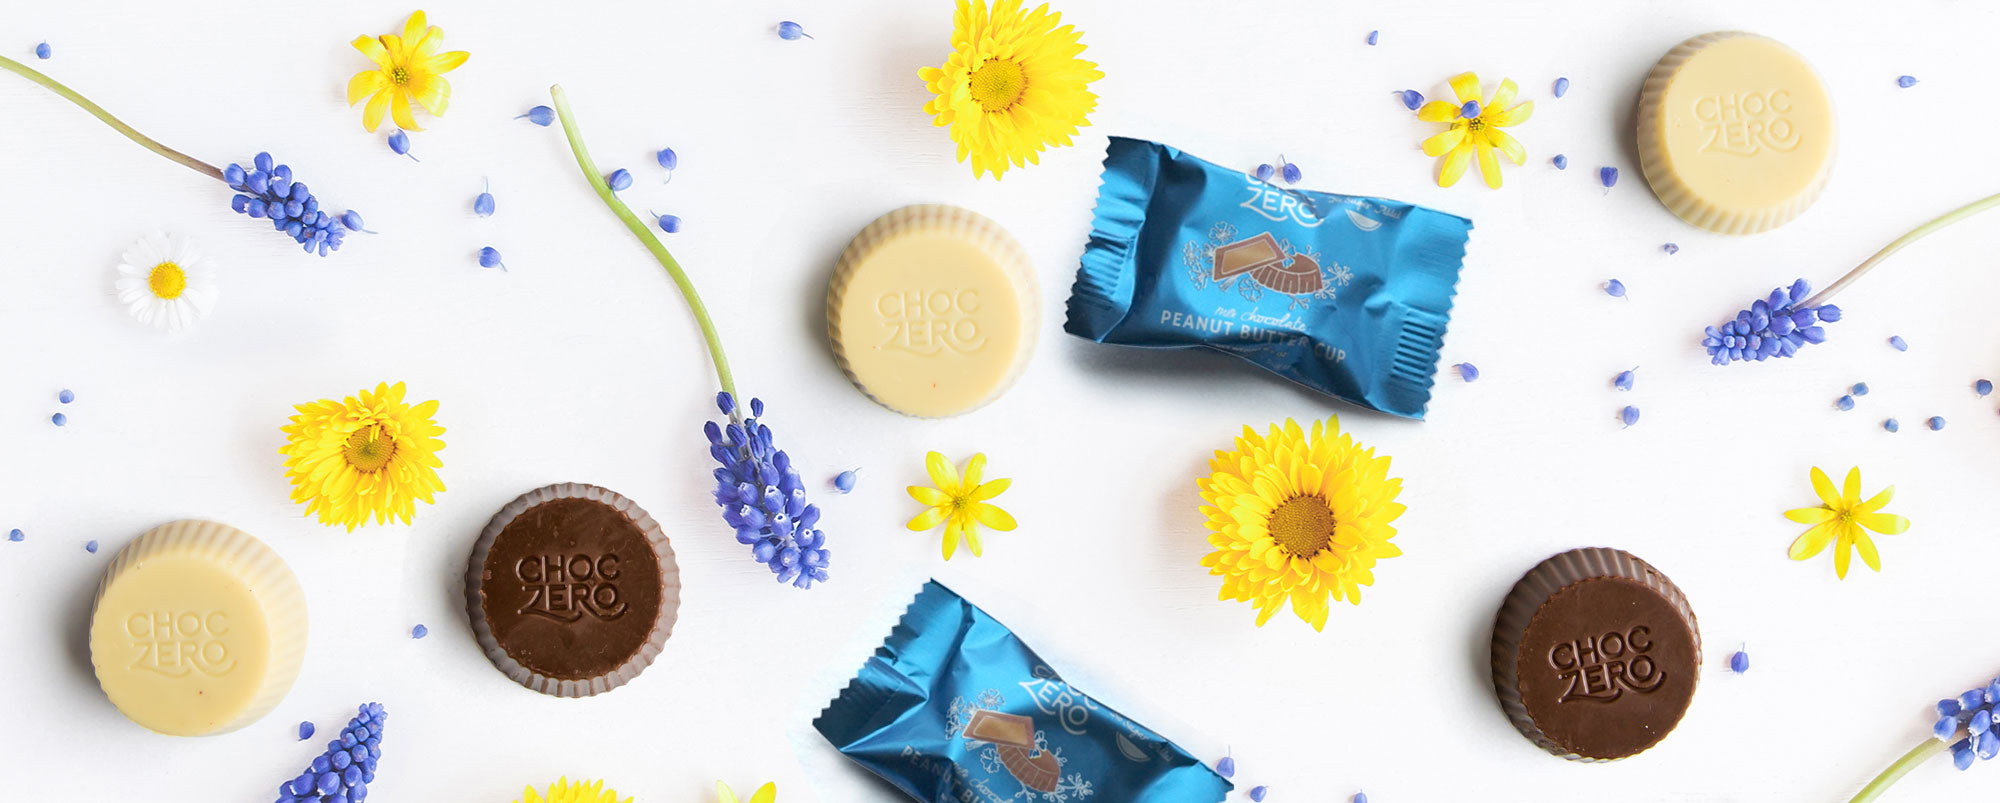 White and milk sugar free peanut butter cups scattered across a white background with blue and yellow flowers